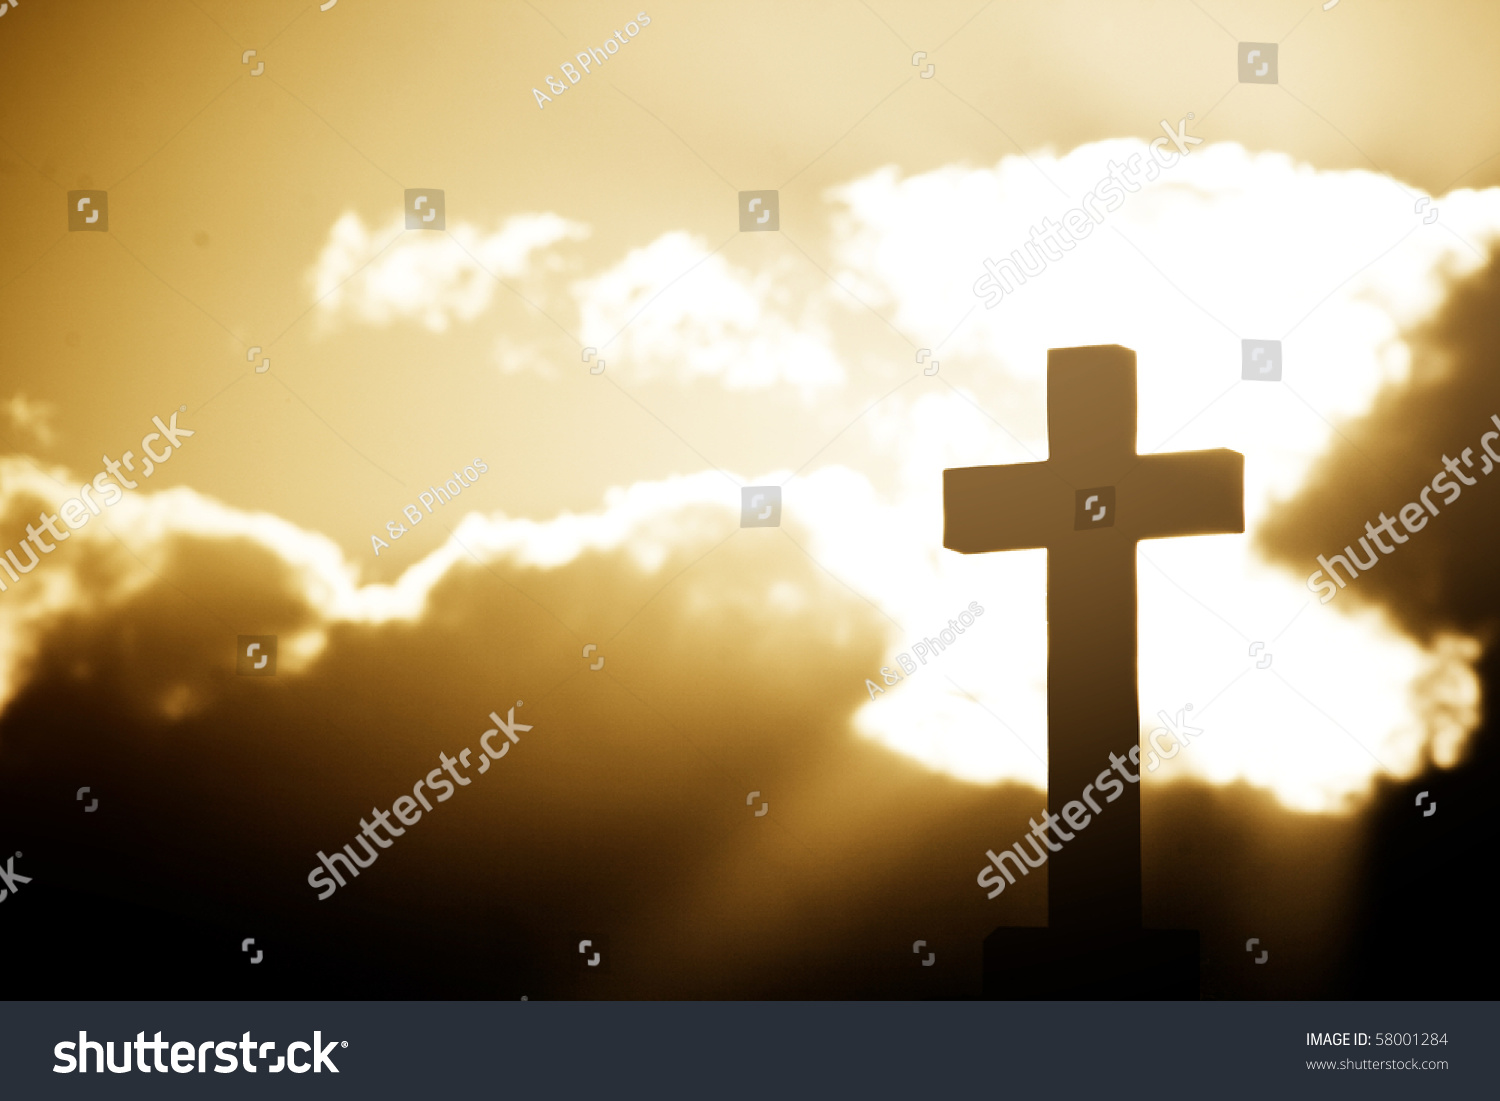 Silhouette of the holy cross on background of storm clouds stock - Silhouette Of A Cross In Beams Of Light